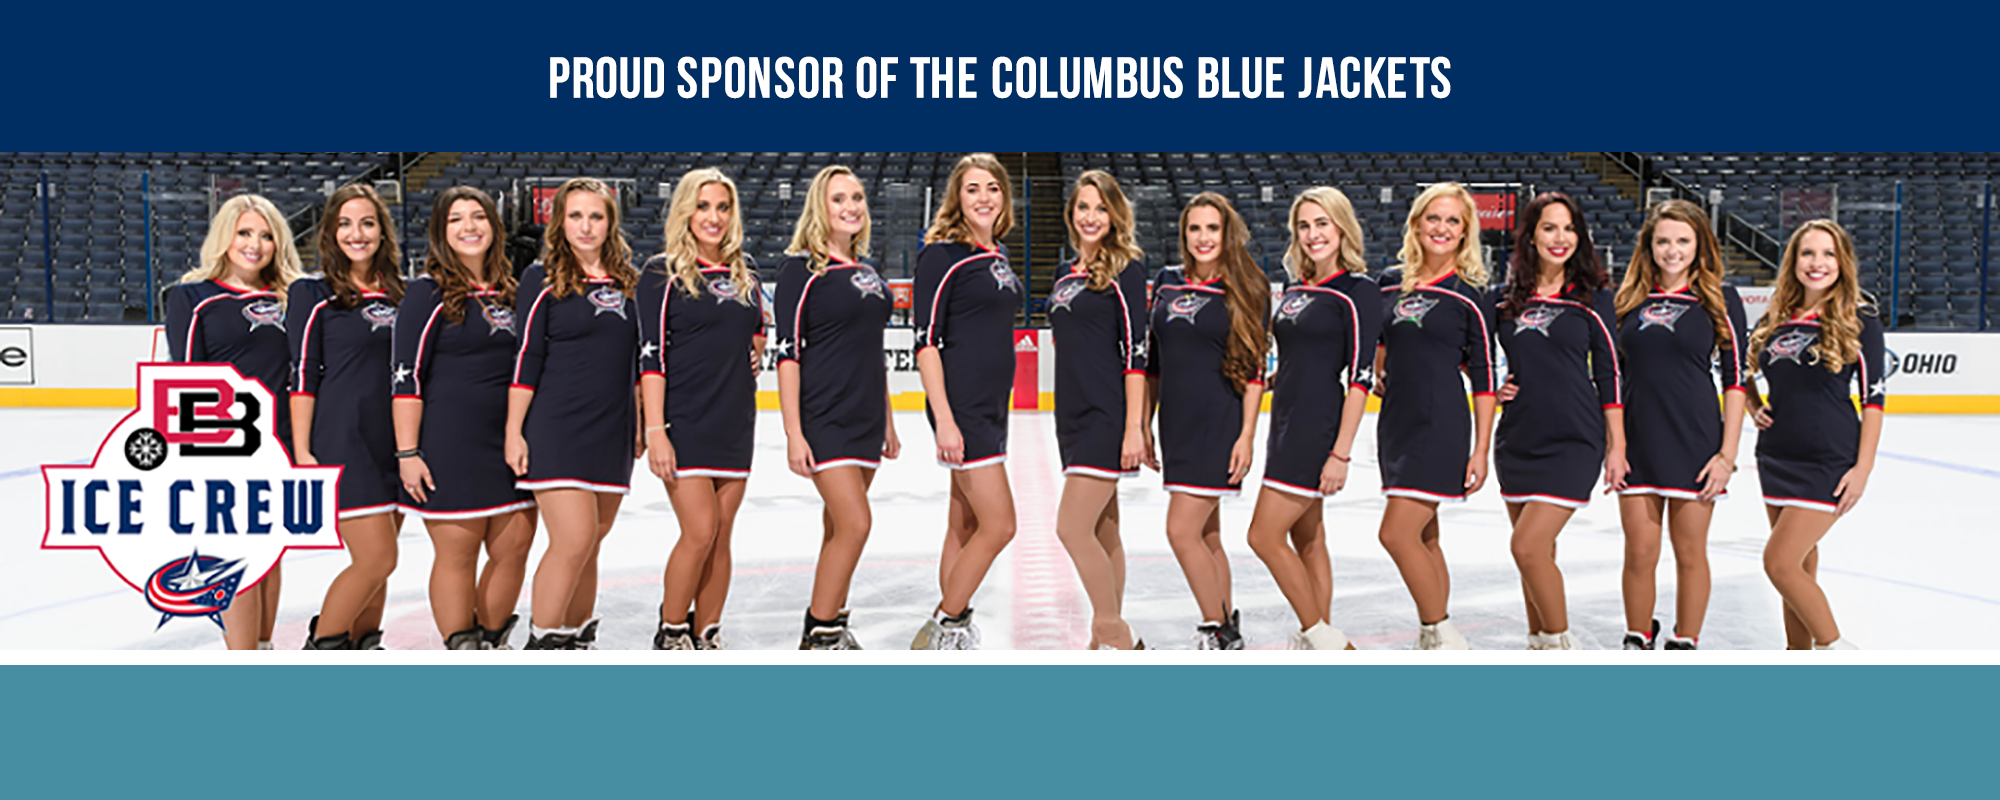 Proud sponsor of the columbus bluejackets banner